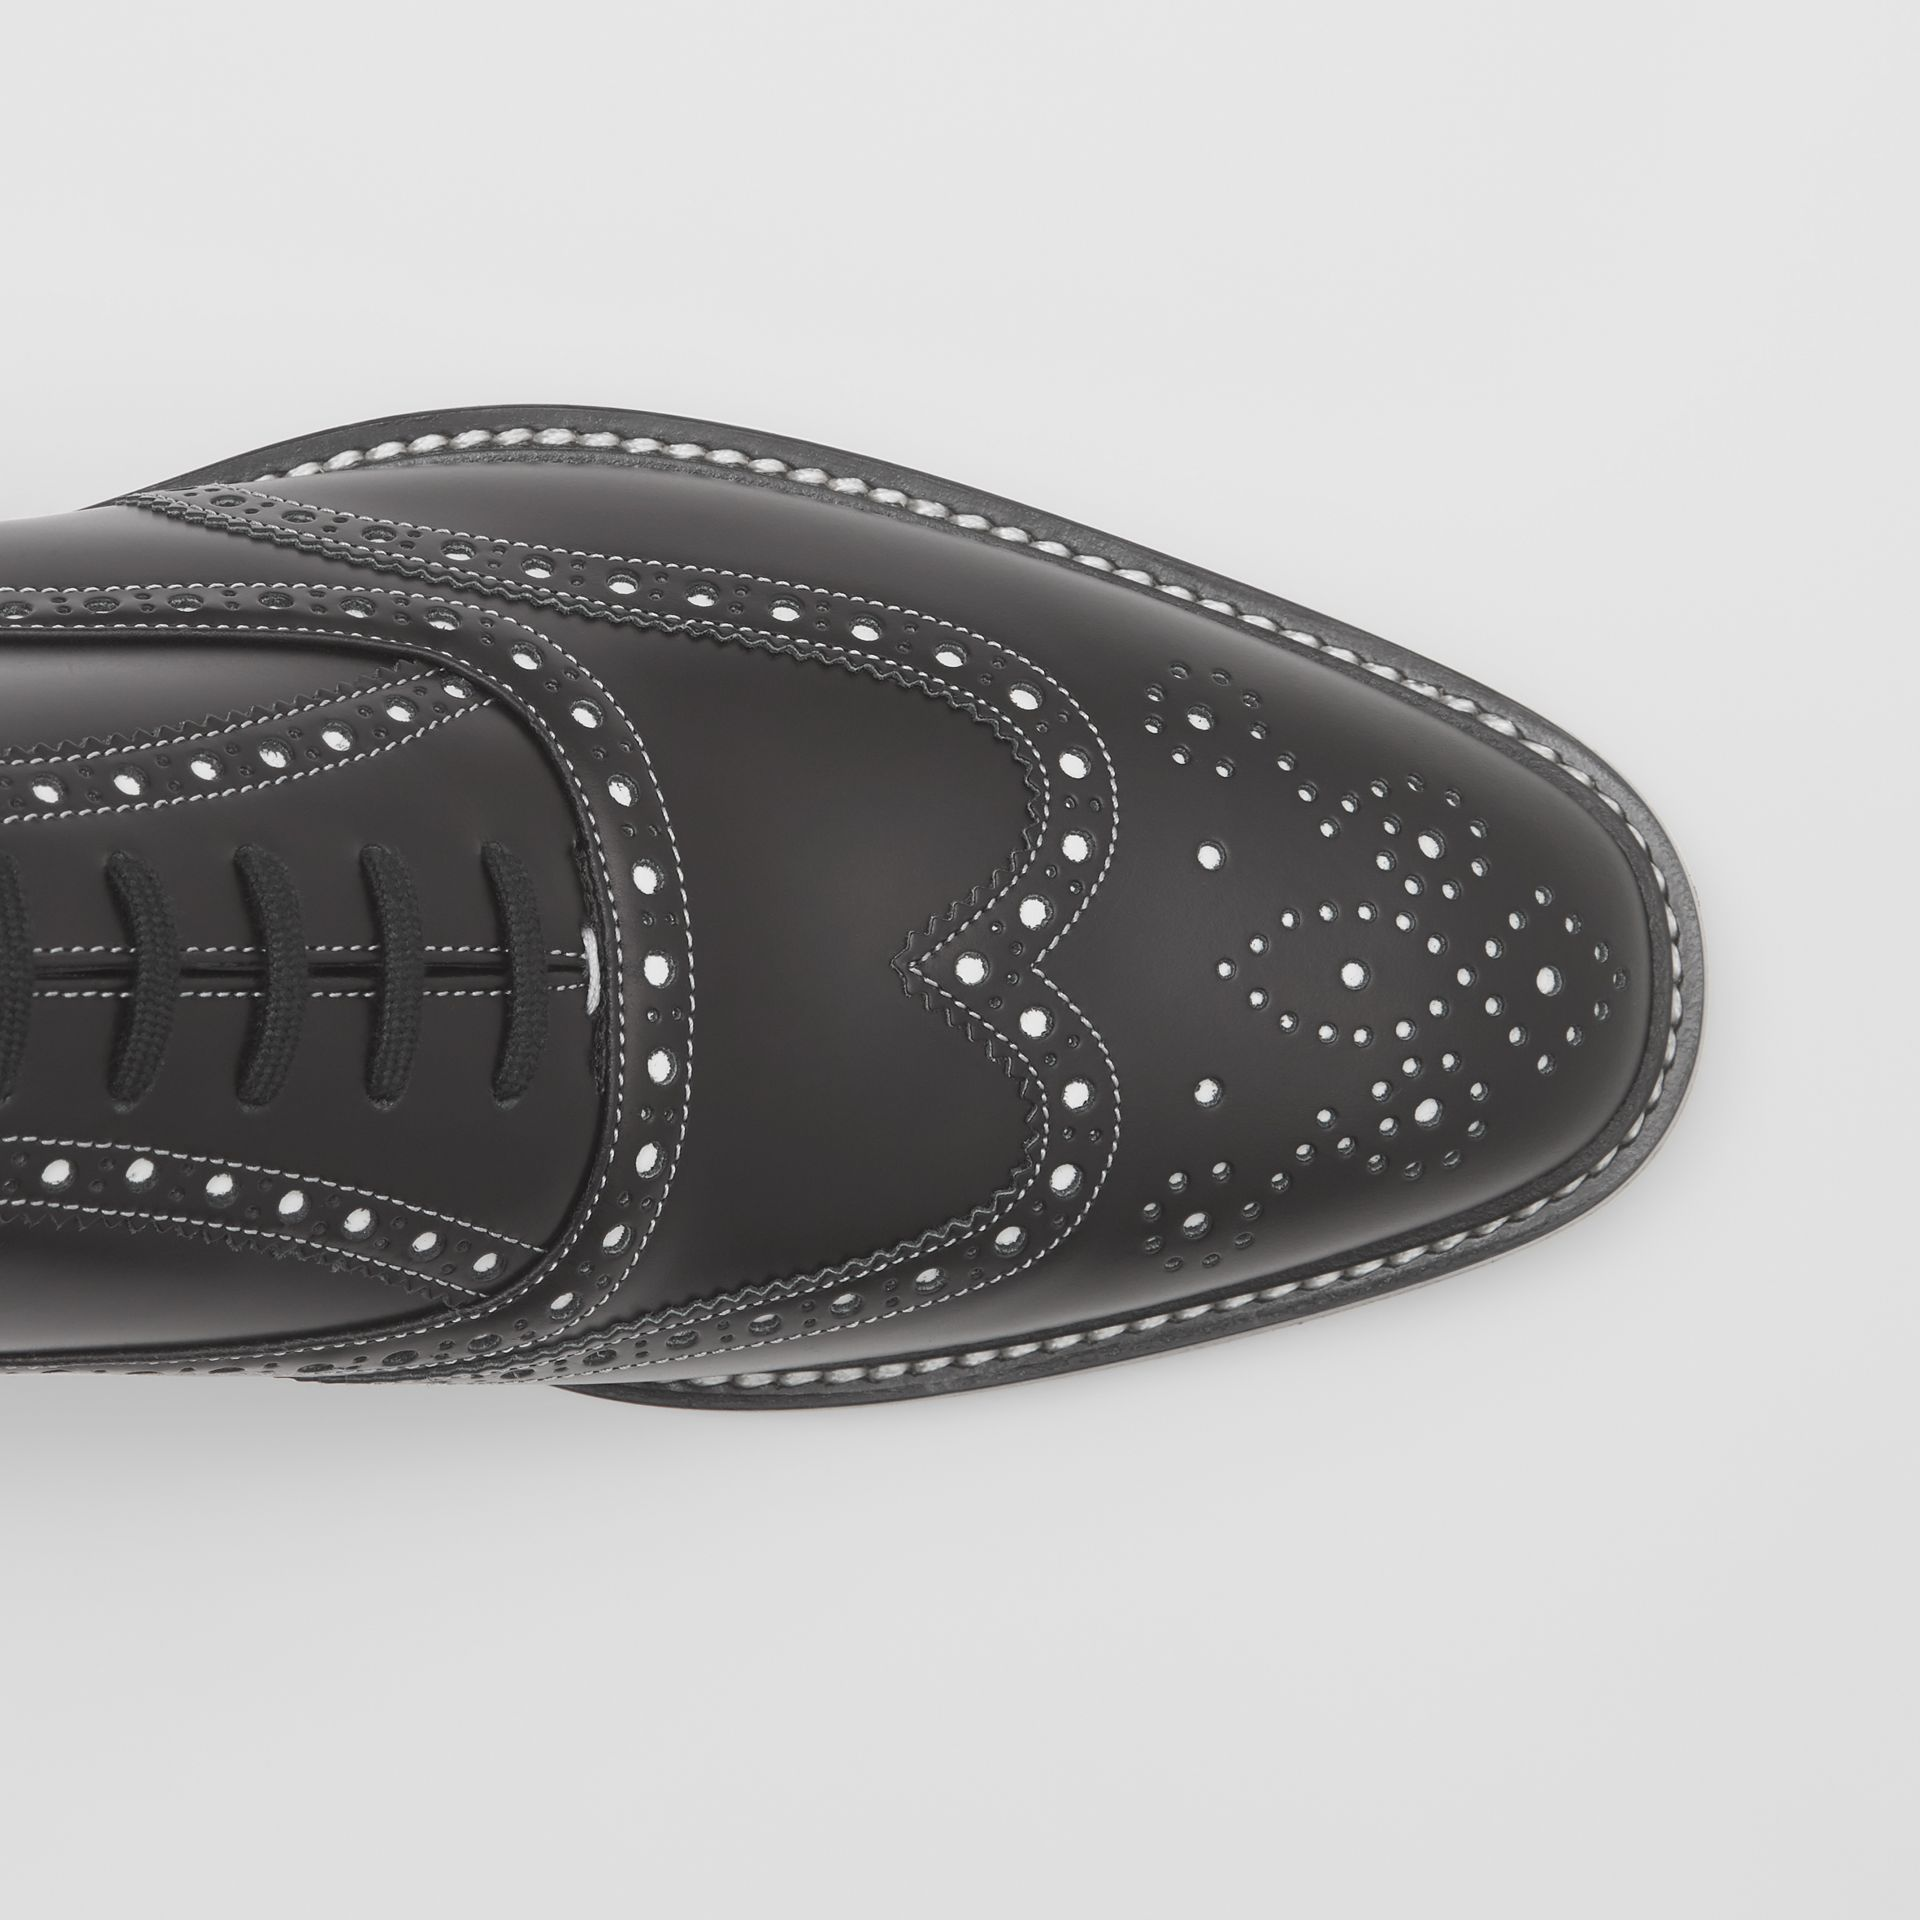 D-ring Detail Two-tone Leather Oxford Brogues in Black/white - Men | Burberry United Kingdom - gallery image 1